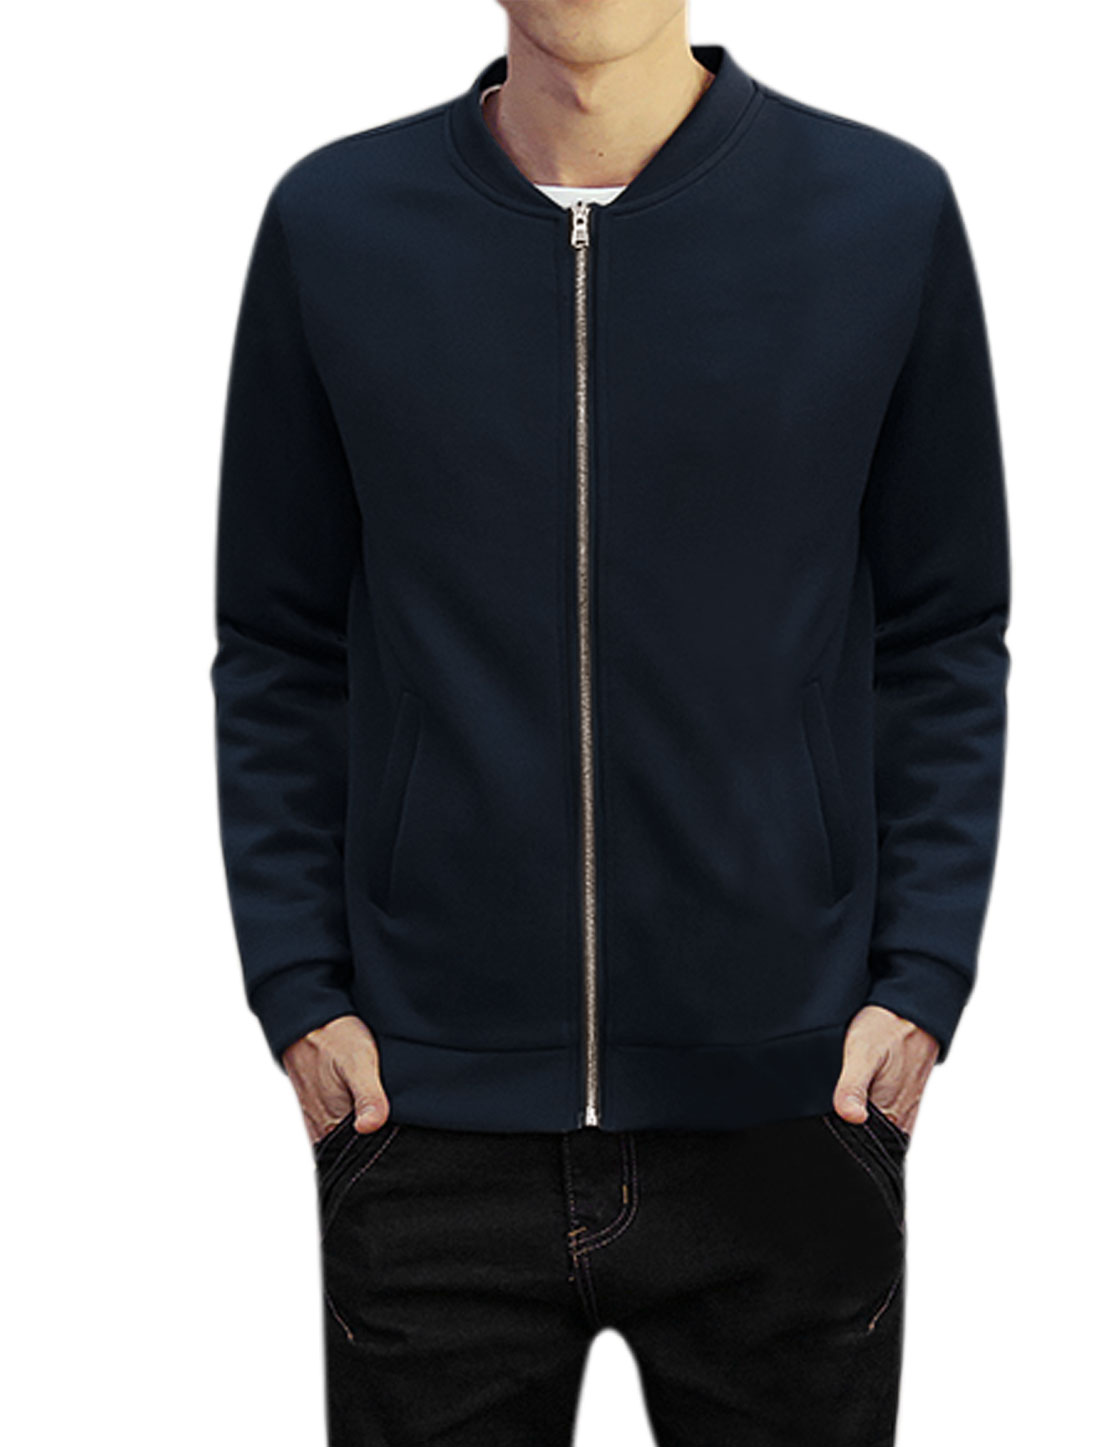 Men Long Sleeves Stand Collar Zip Up Casual Jacket Navy Blue M